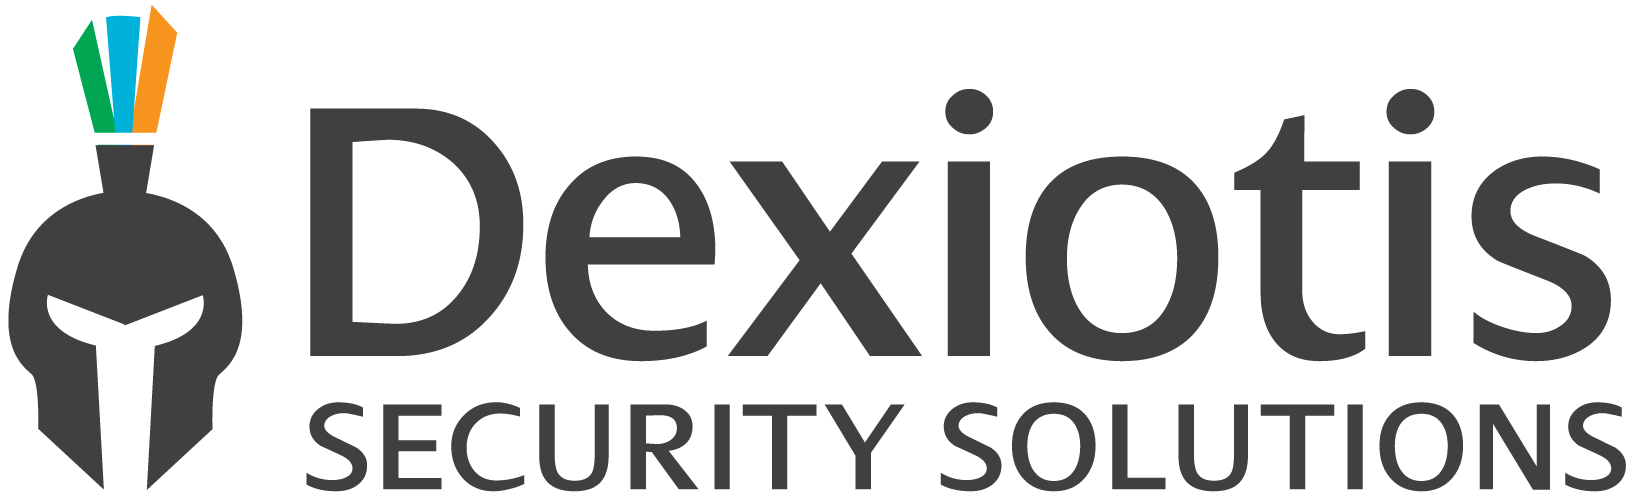 Dexiotis Security Solutions